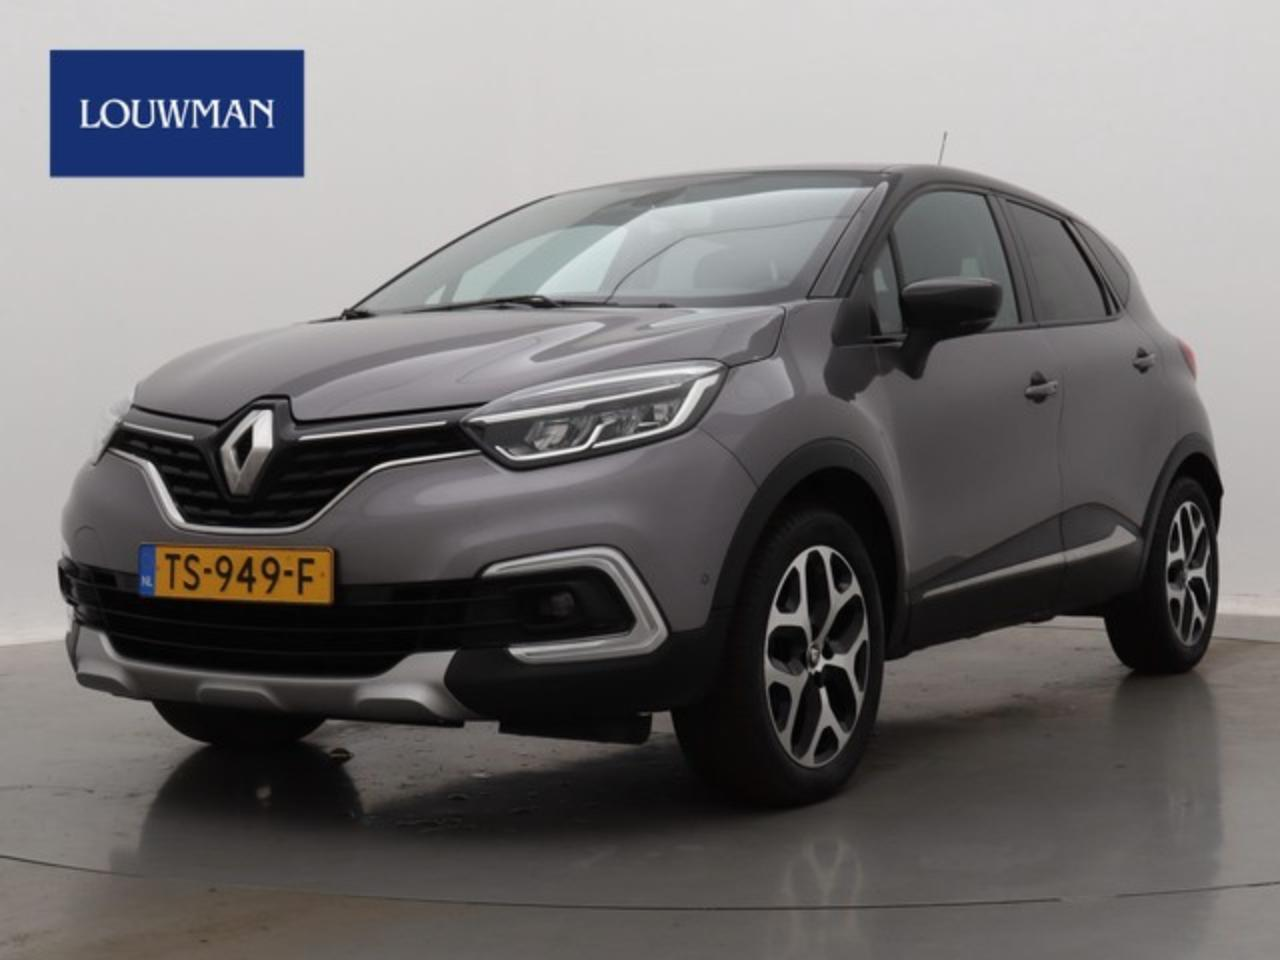 Renault Captur 0.9 TCe Intens Camera achter | Ecc | Trekhaak | Lm